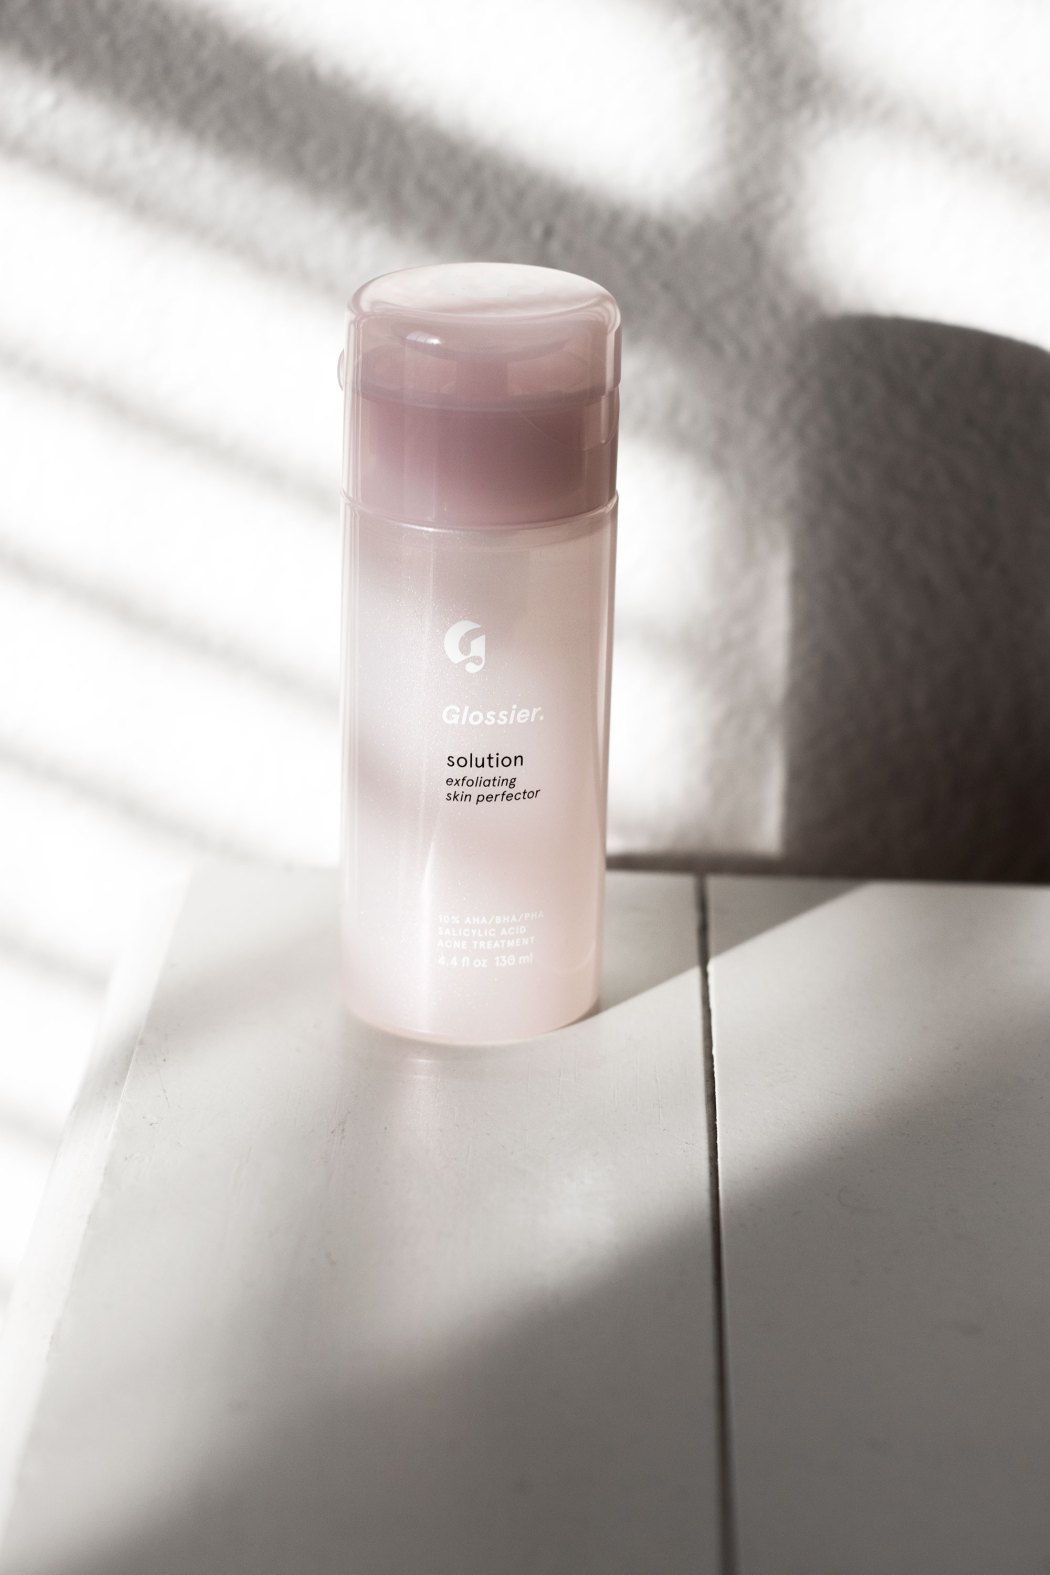 Glossier Solution review